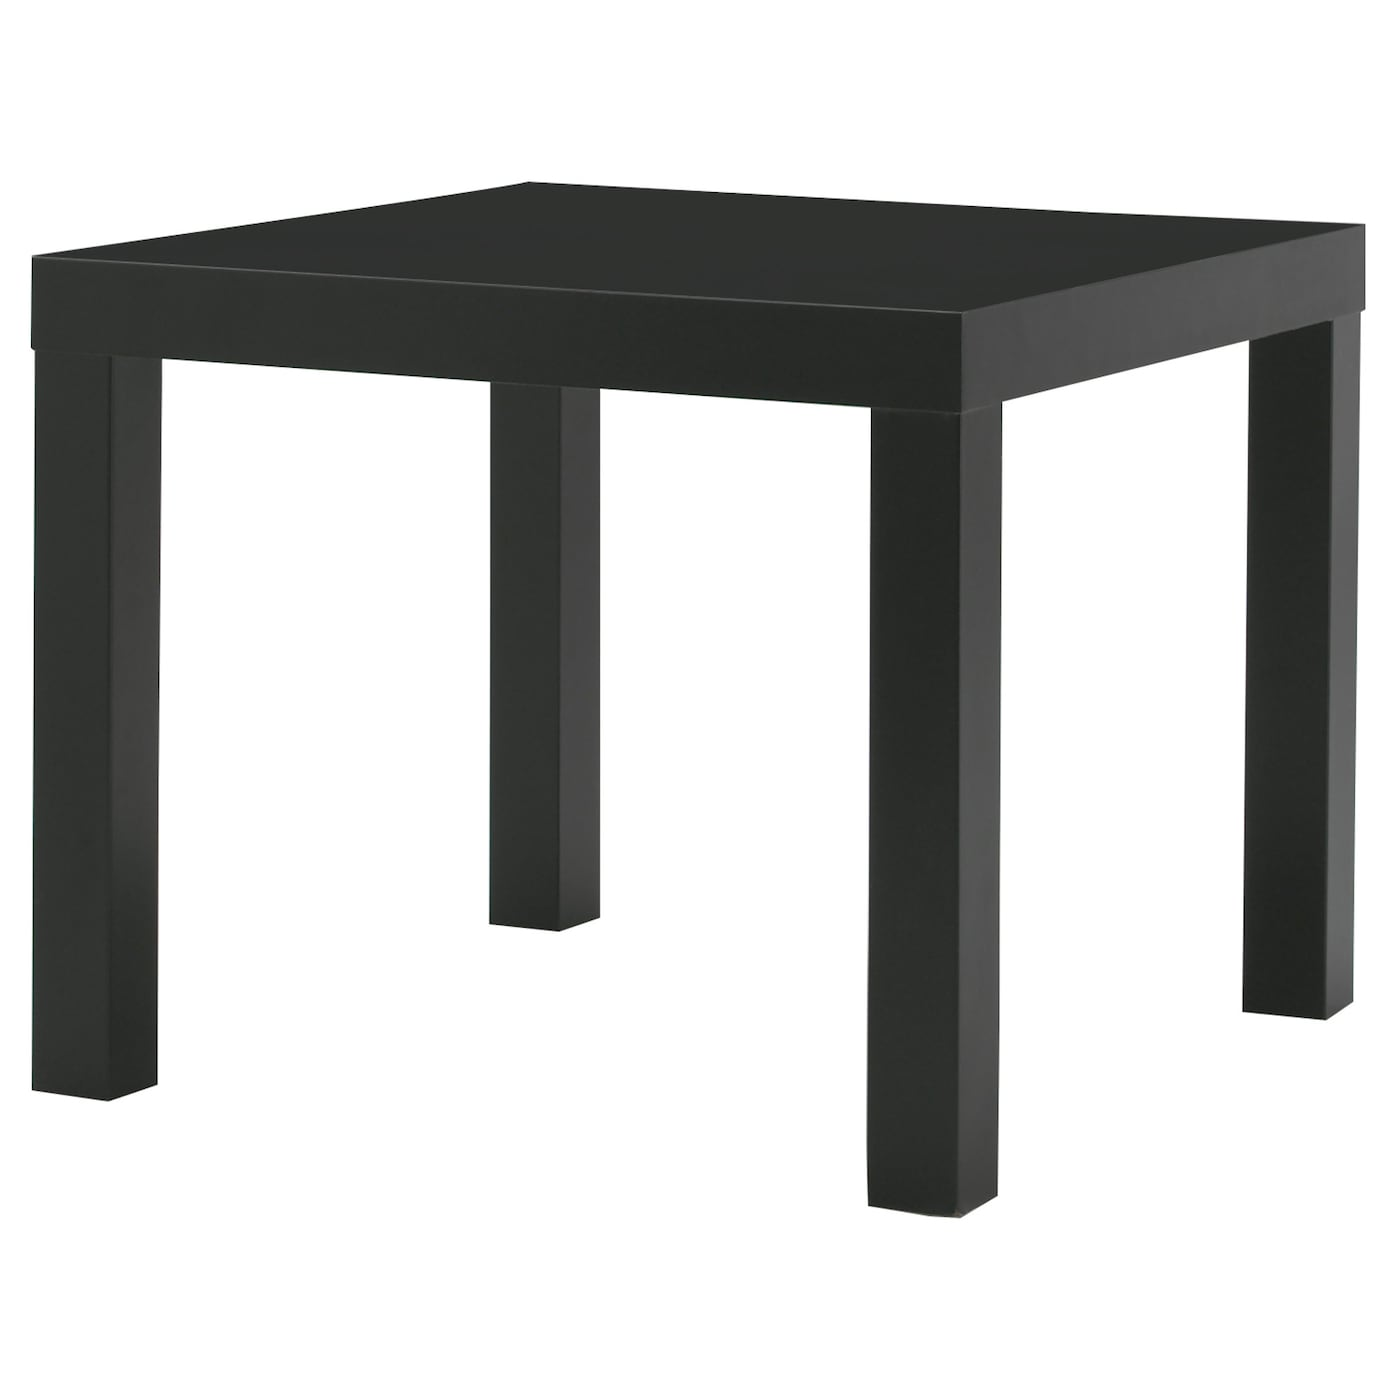 table d 39 appoint table d 39 appoint pliante ikea. Black Bedroom Furniture Sets. Home Design Ideas